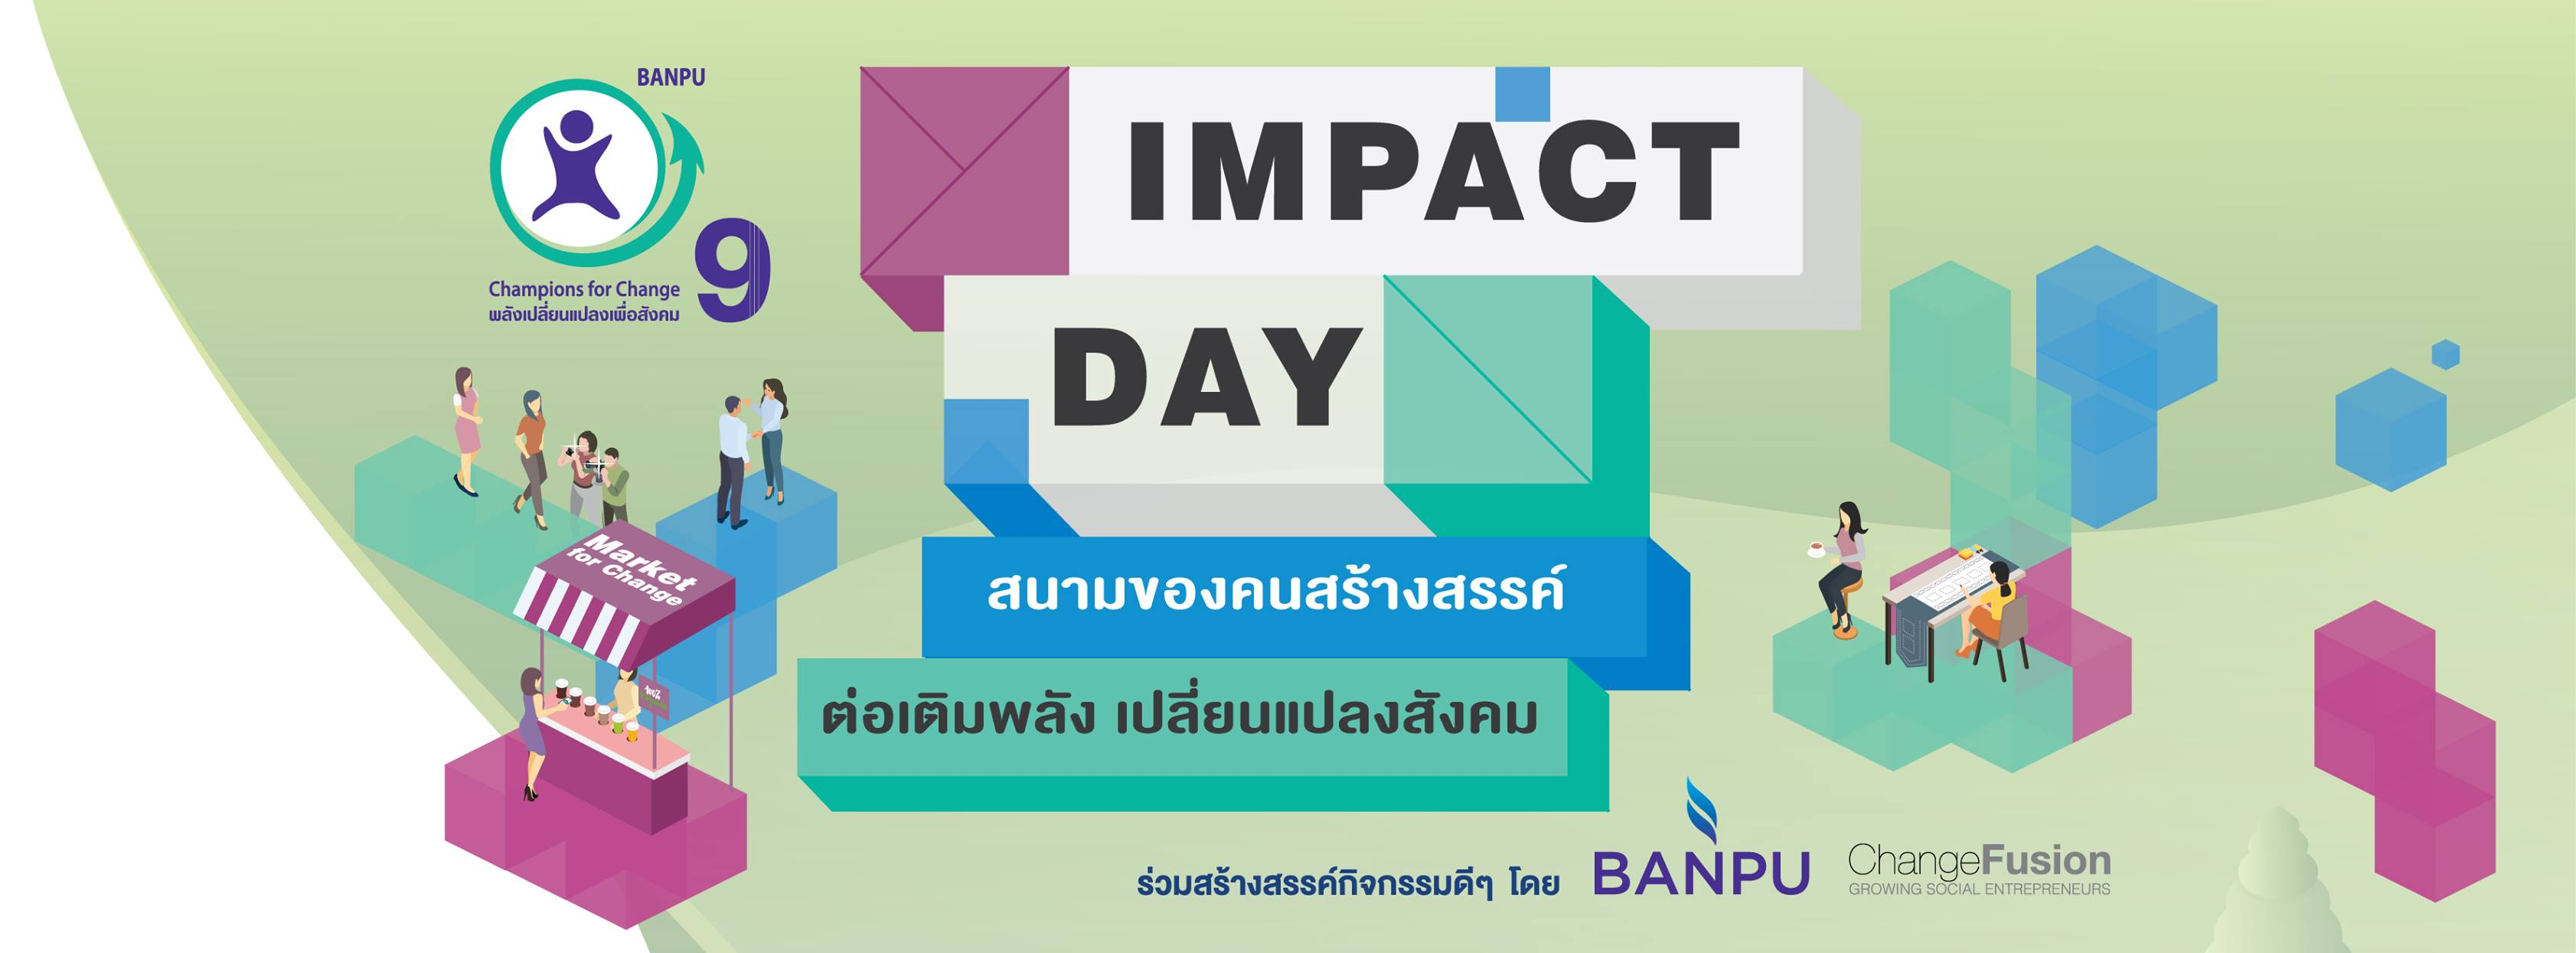 Impact Day 2019